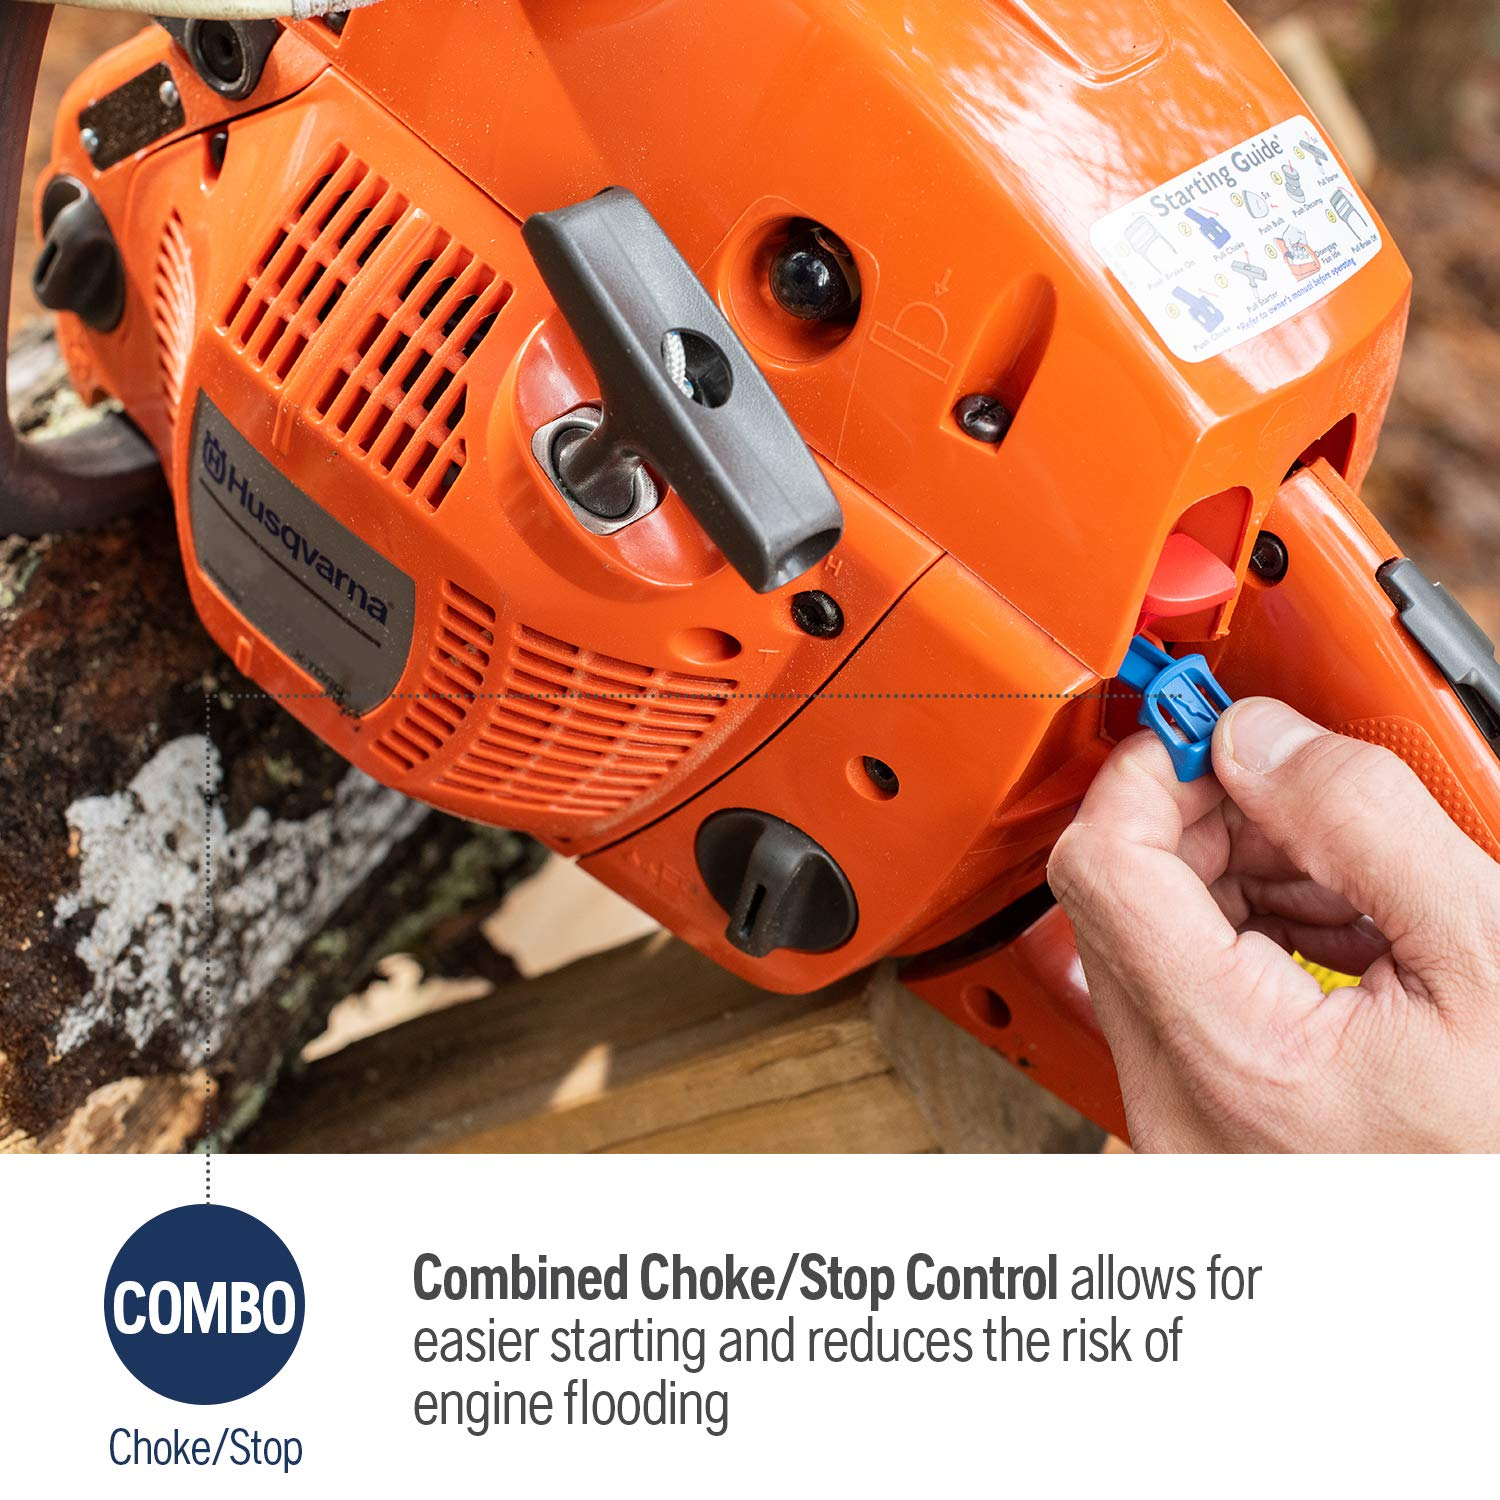 Husqvarna 460 Rancher Chainsaws product image 5